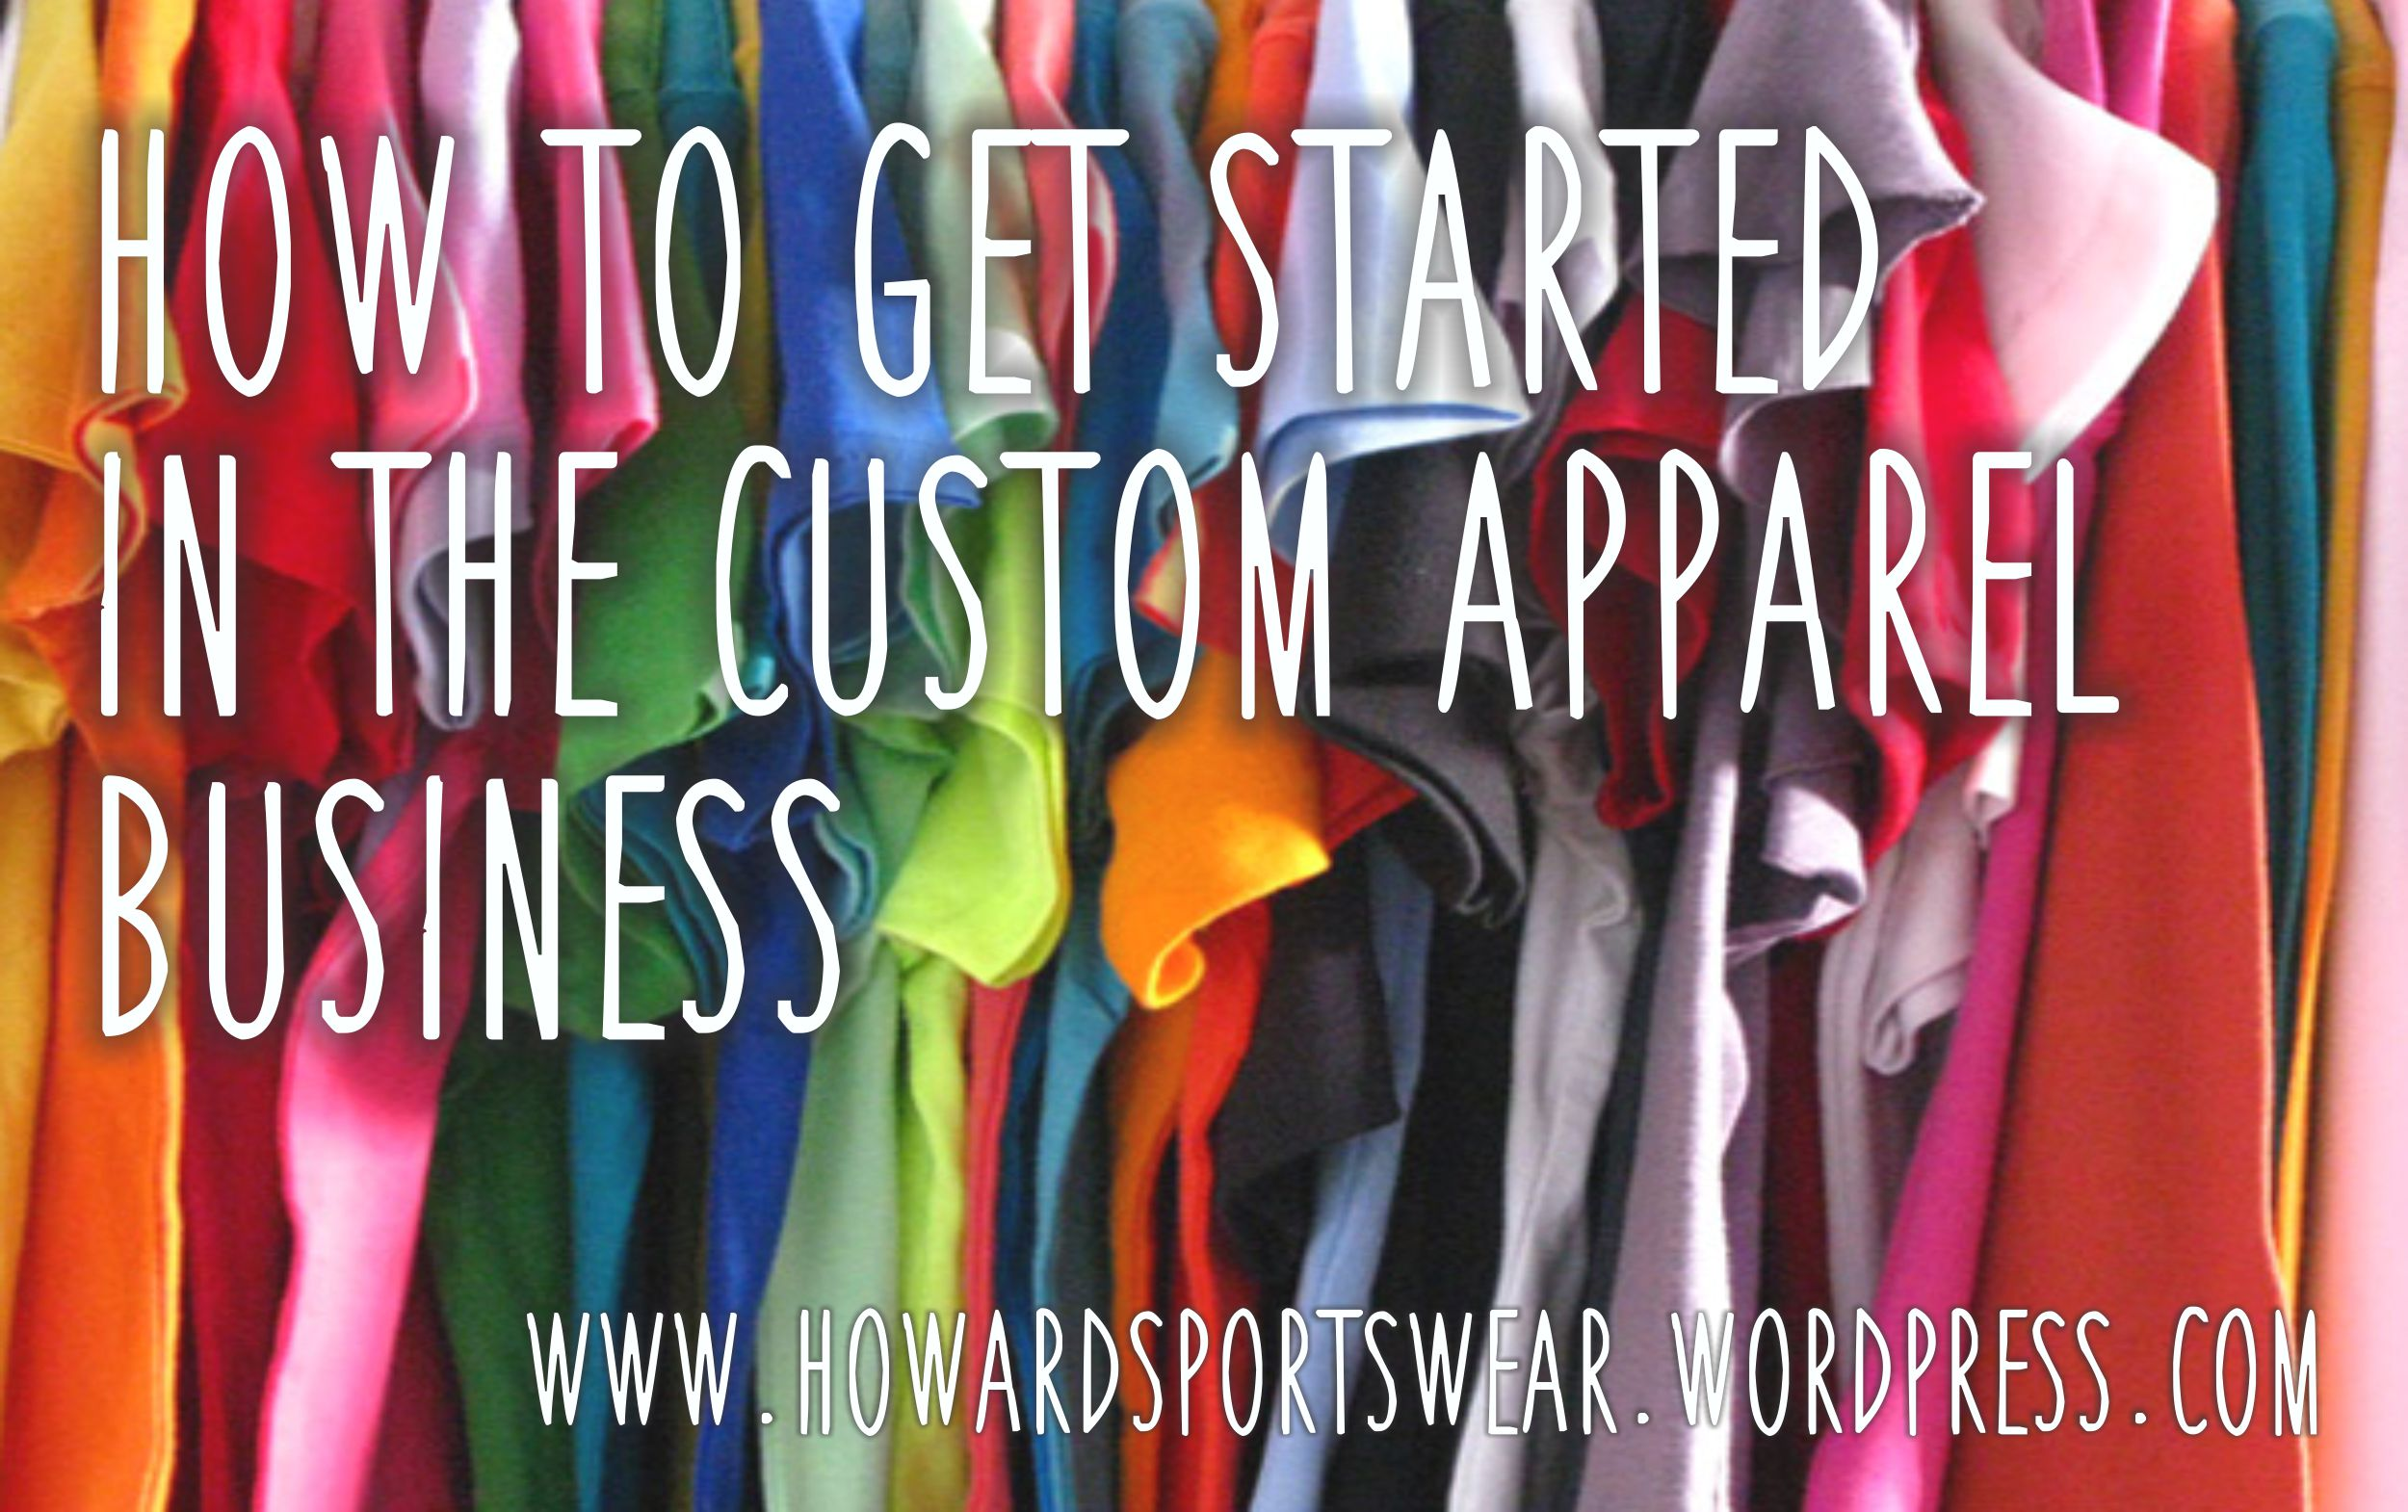 Design your own t-shirt business - The Thought Of Starting Your Own T Shirt Company Can Be Exciting But Some Jump Into It Too Soon Without Proper Thought And Preparation